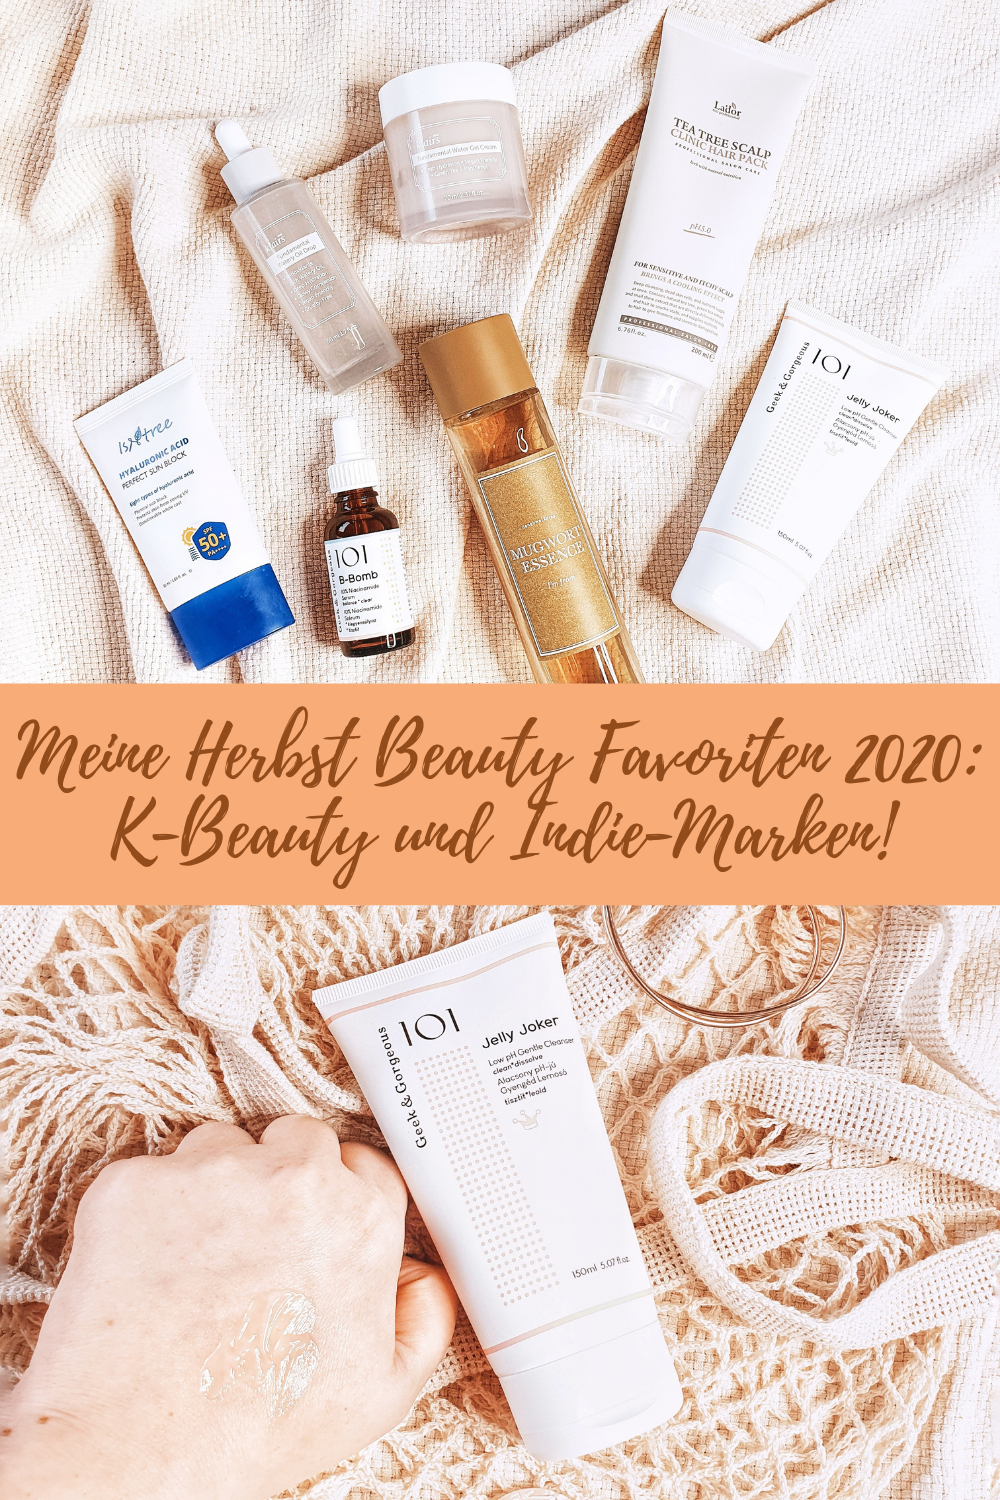 Meine Herbst Beauty Favoriten 2020: K-Beauty und Indie-Marken